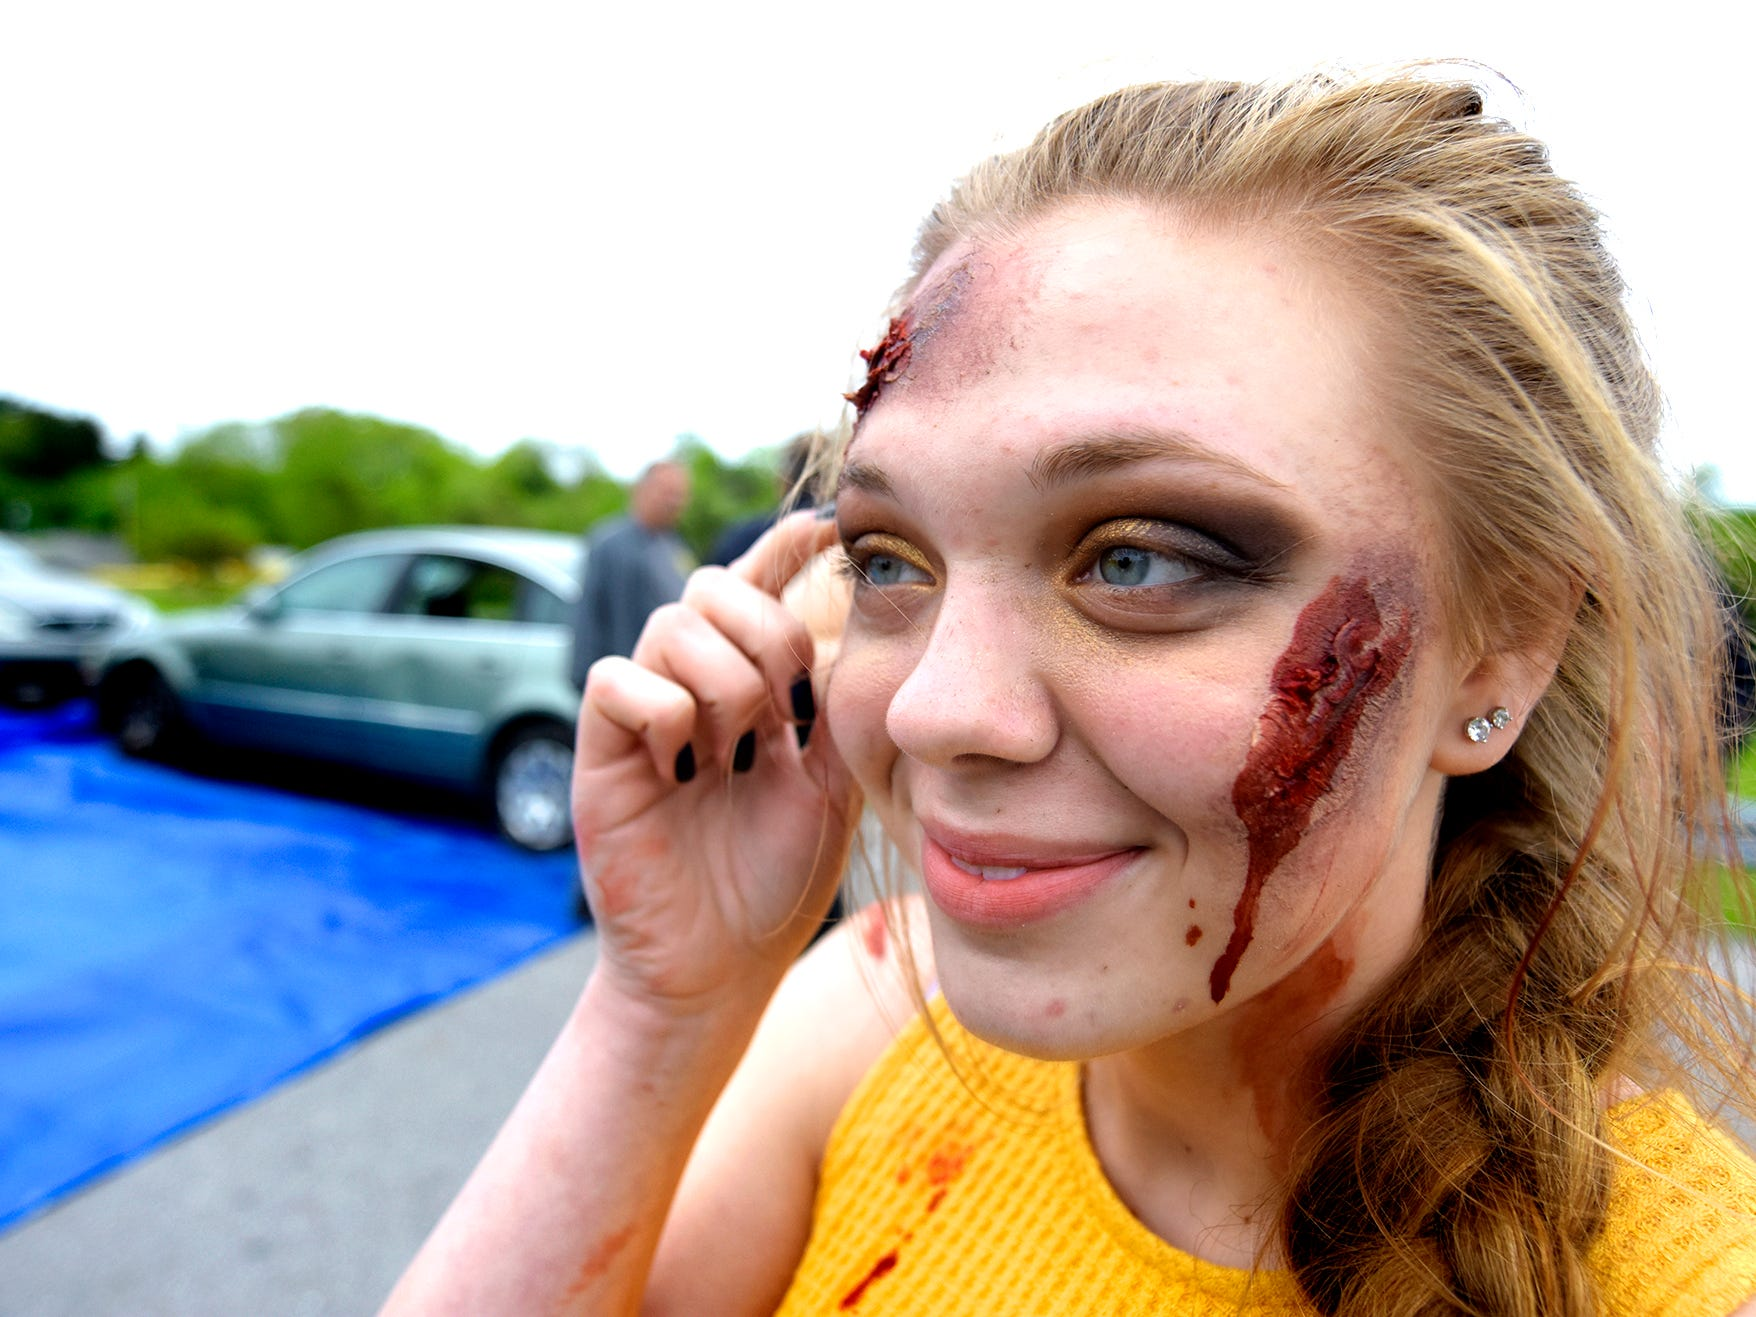 Dover High School mock accident victim, junior Victoria Brennan, waits to take her place during the staging of the accident at the Dover Area High School Thursday, May 9, 2019. Local fire, ambulance and police volunteered for the event which reminds high school upperclassmen to be safe during prom season. Dover's prom in Saturday, May 11. Bill Kalina photo